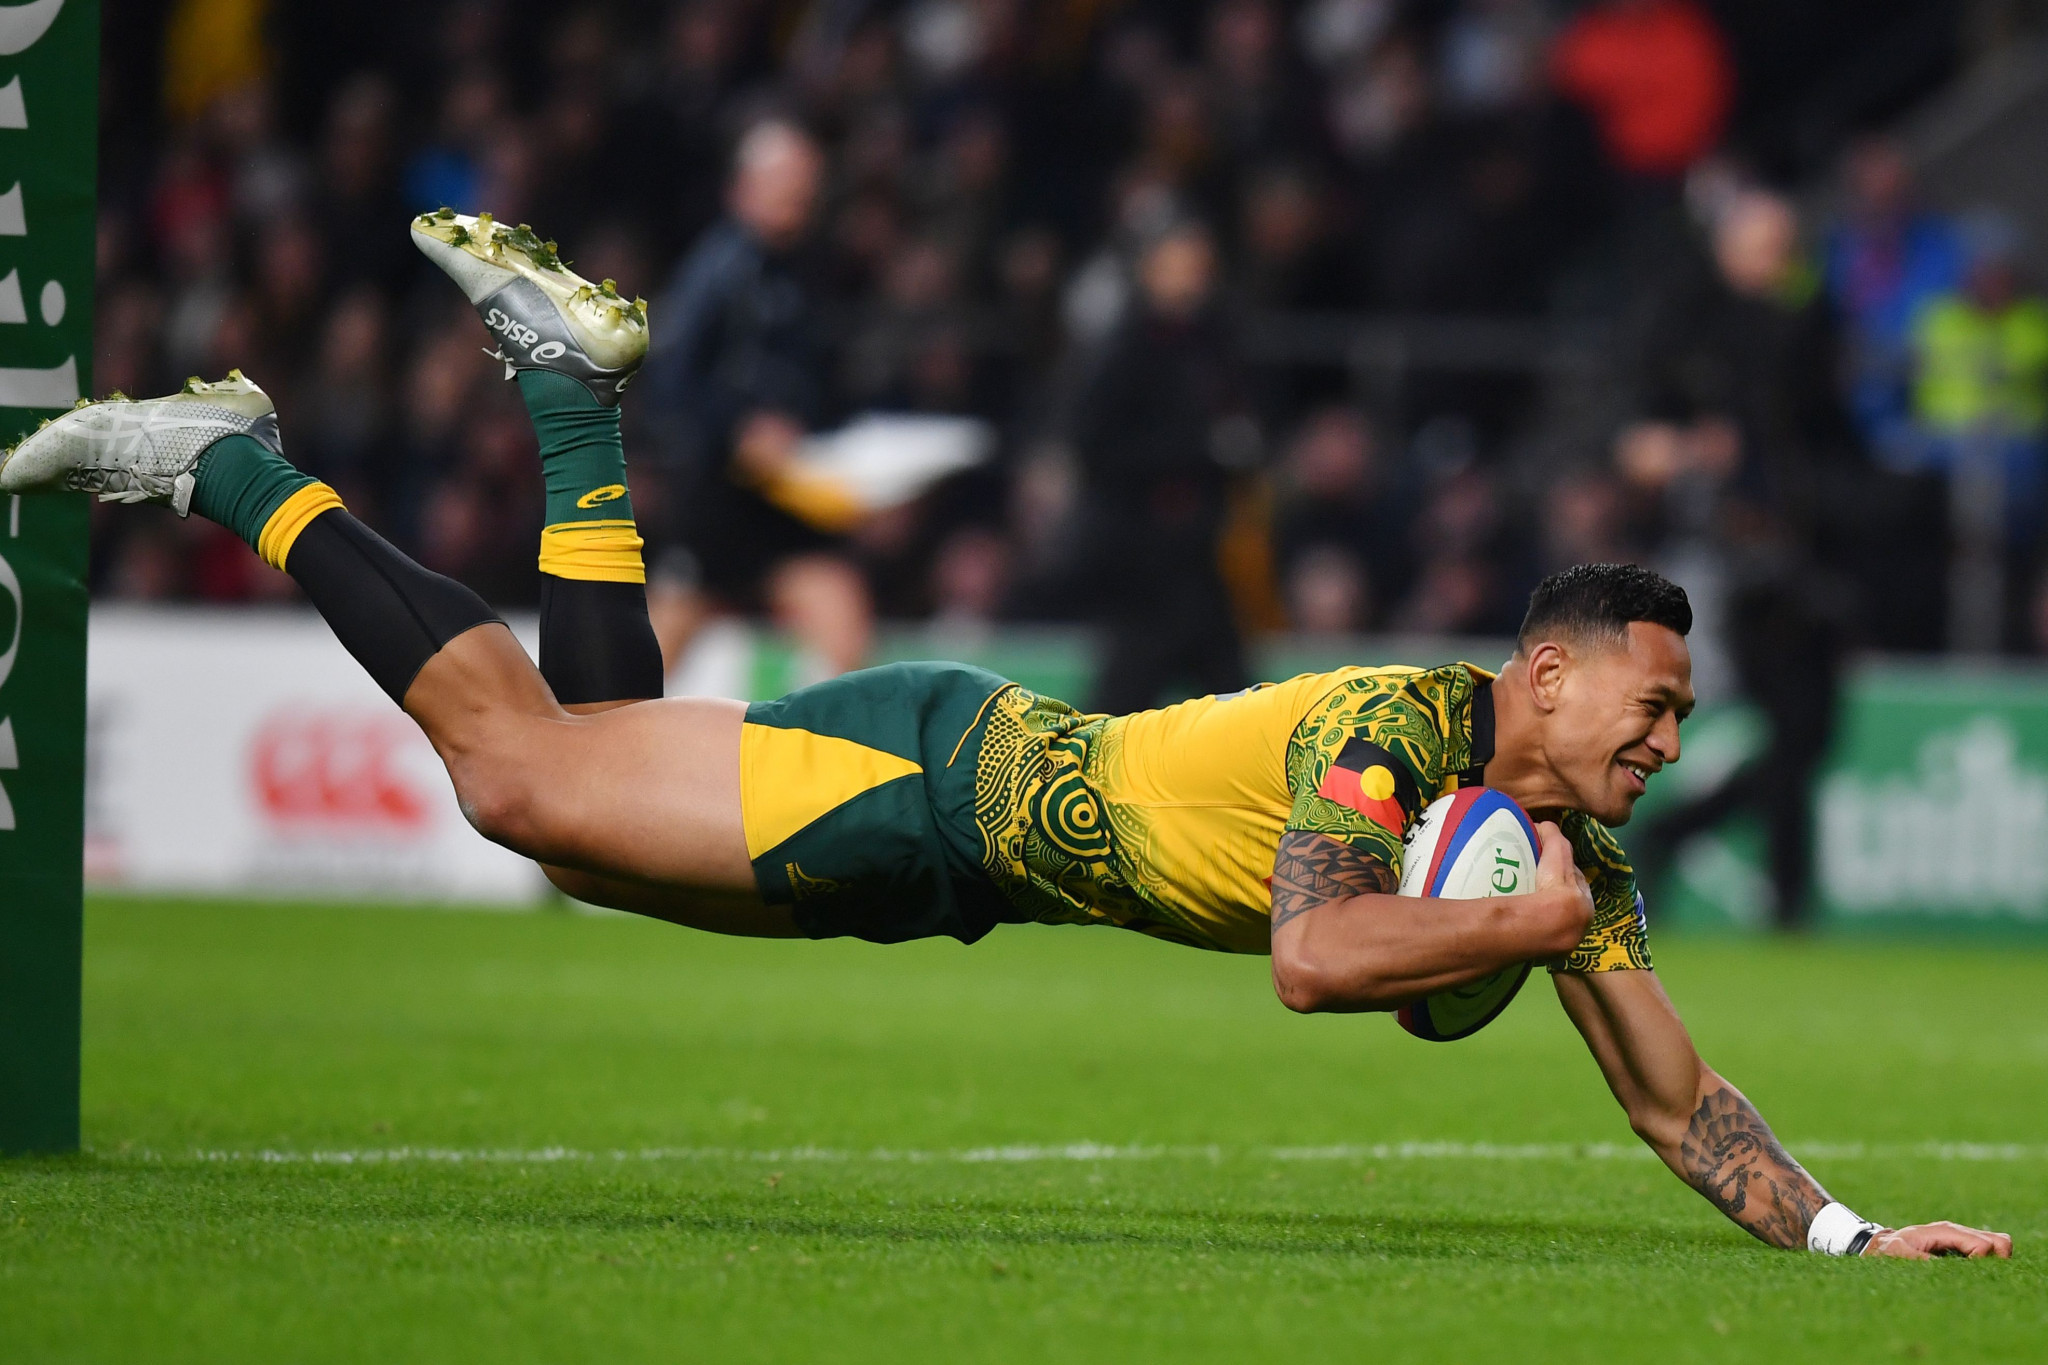 Folau returns to rugby league after controversial sacking